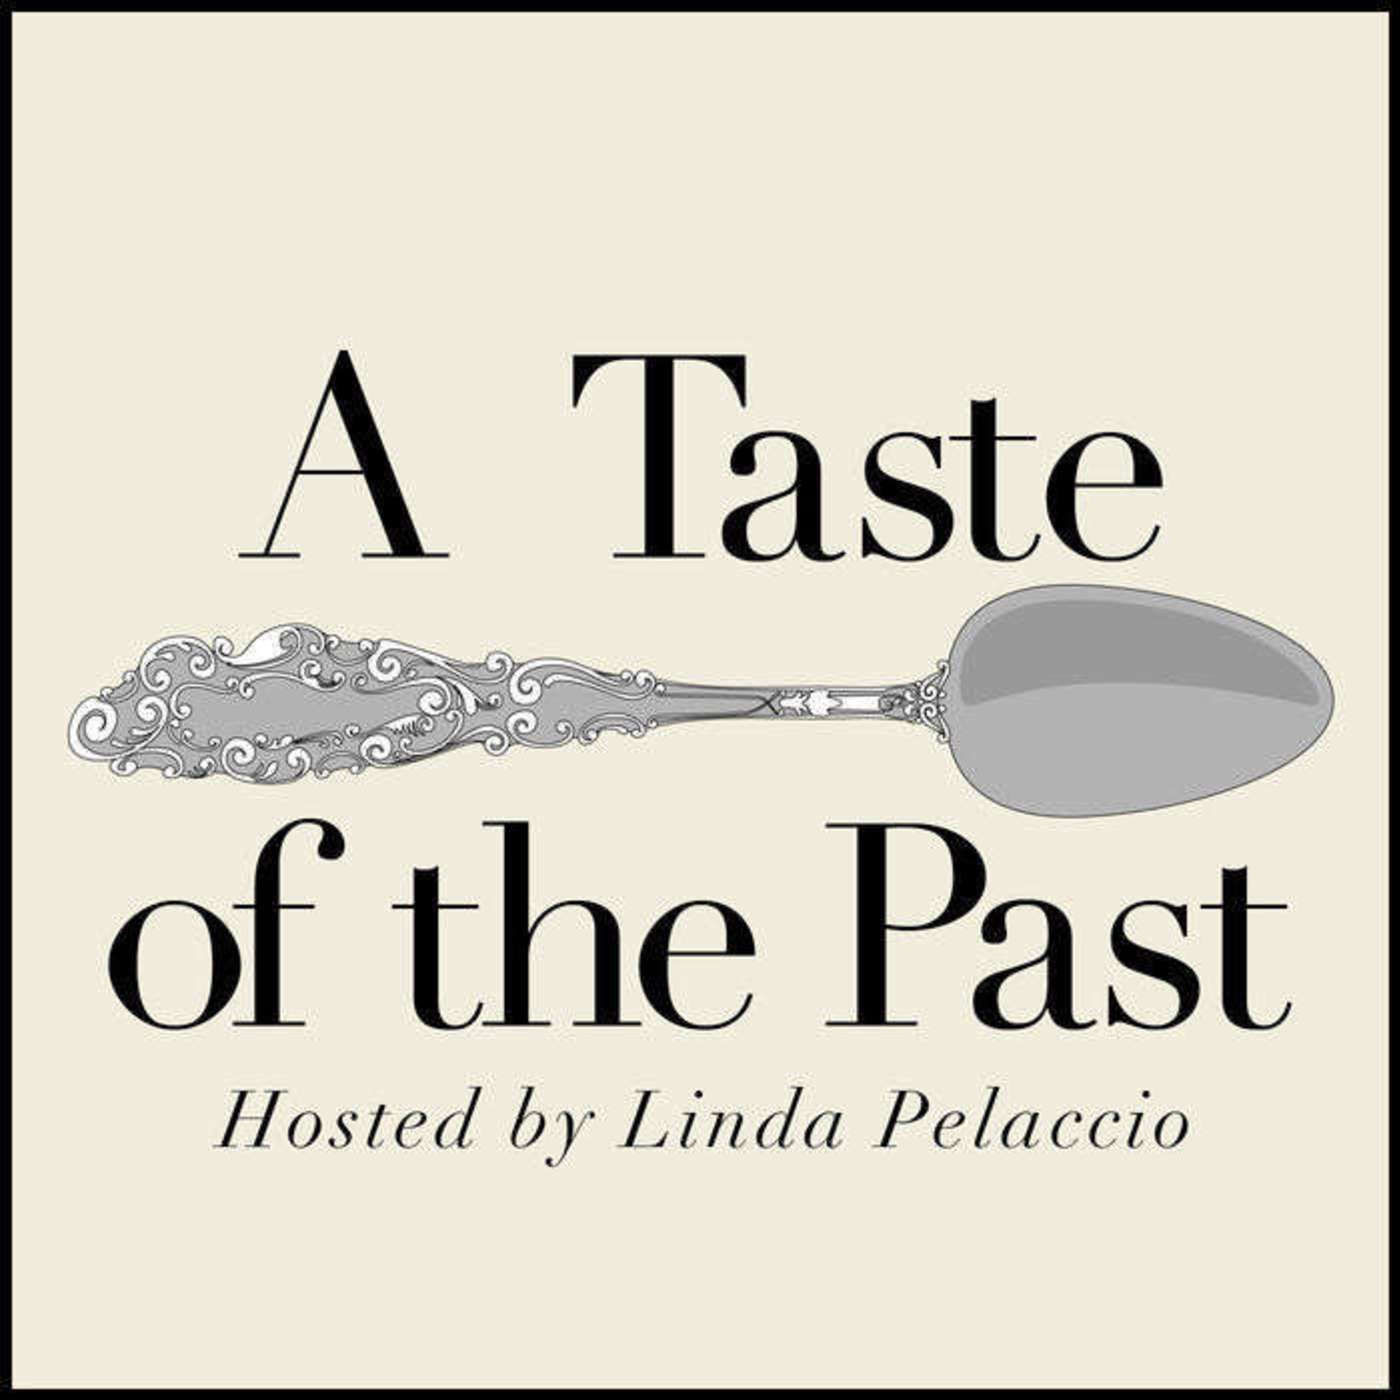 Episode 79: The Silver Spoon